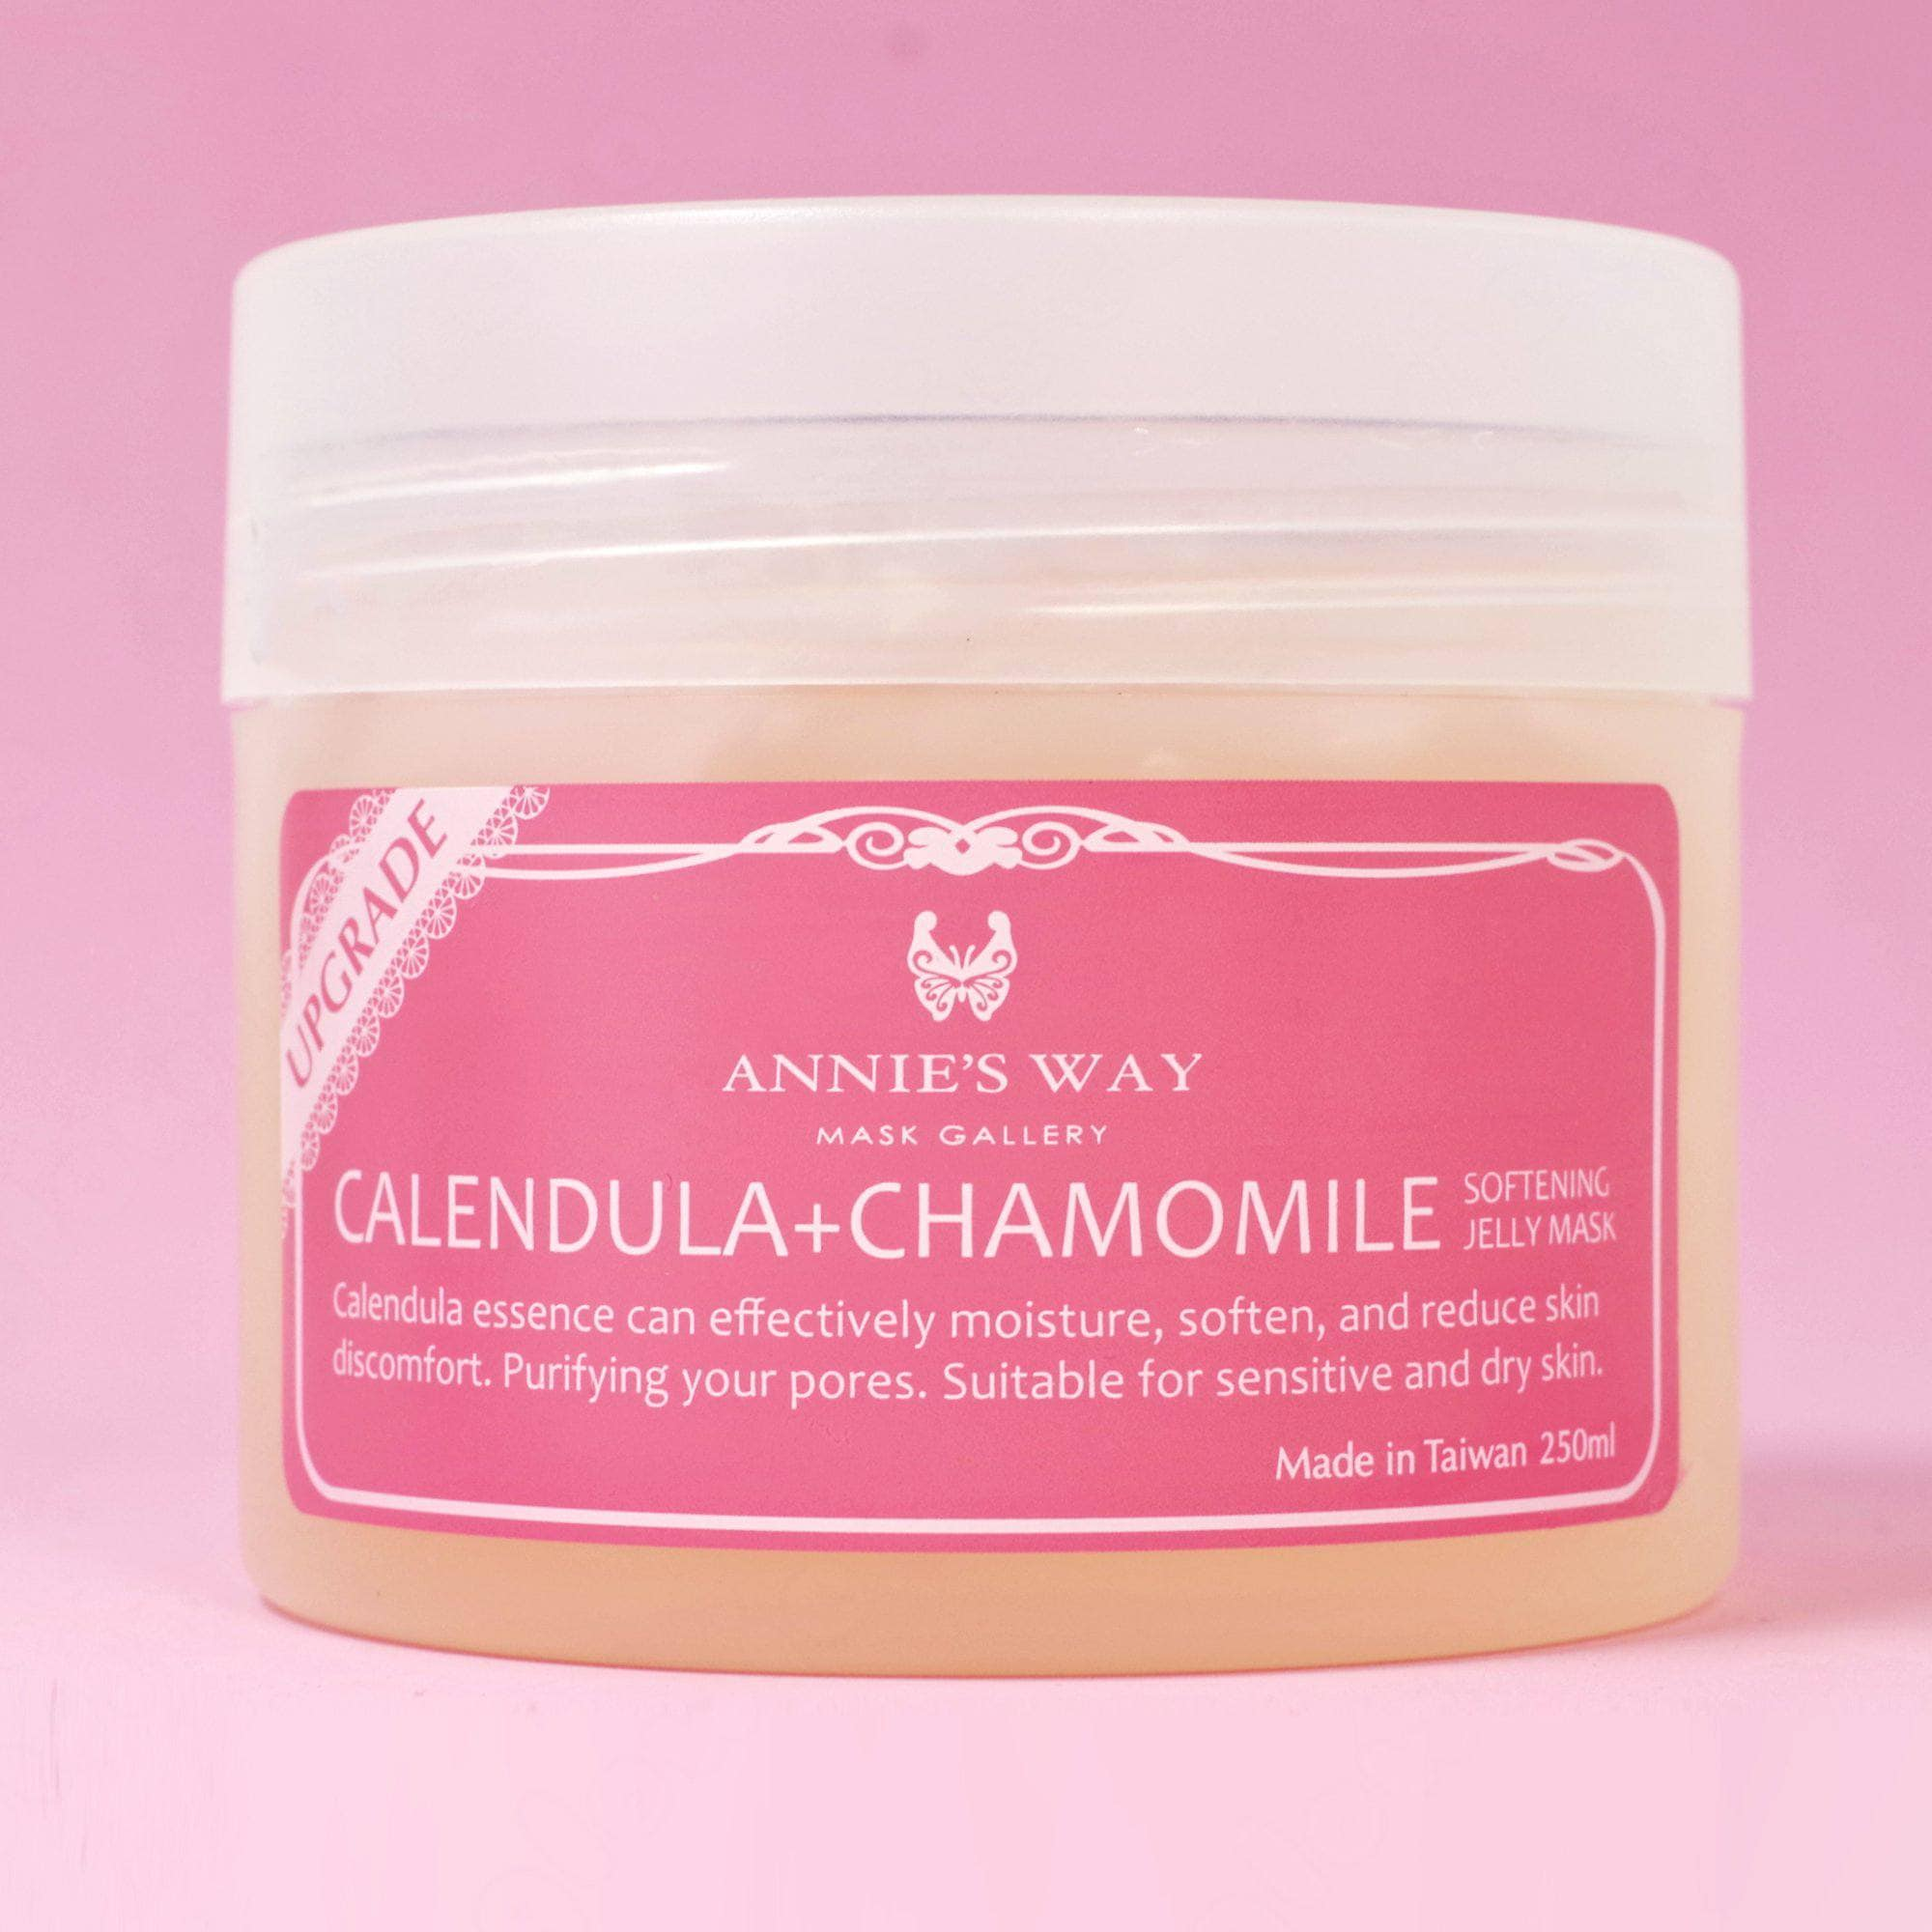 Annie's Way Calendula + Chamomile Softening Jelly Mask